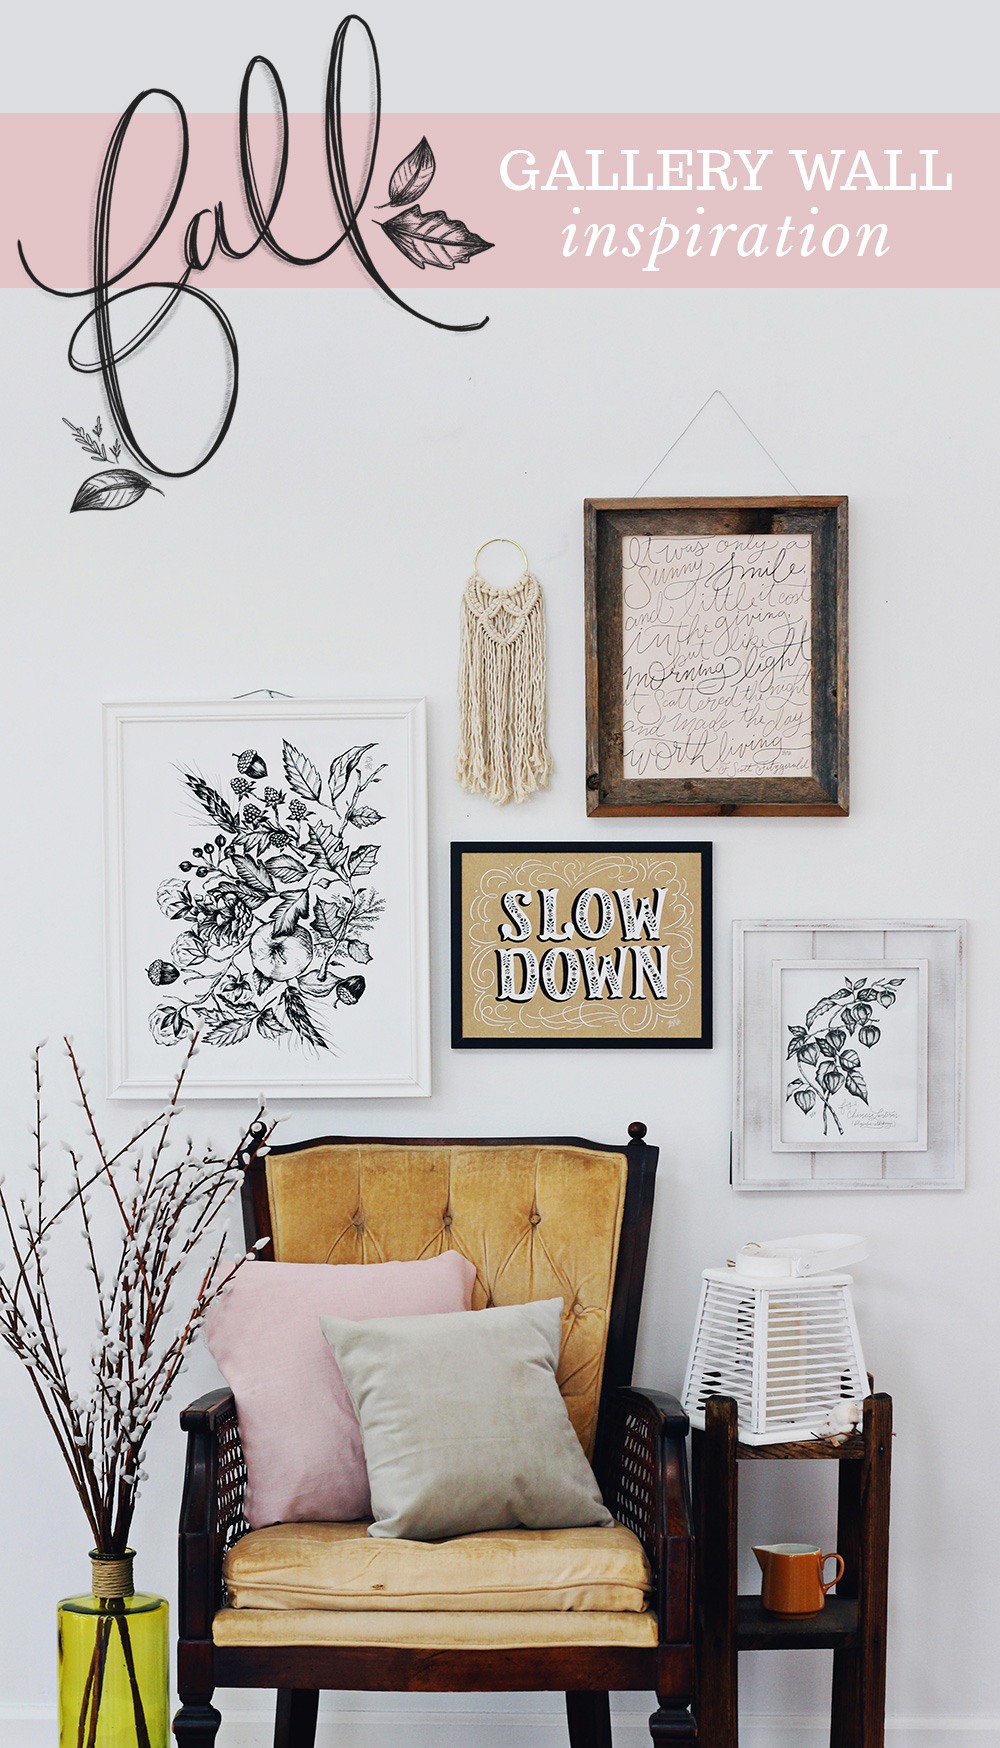 Fall Gallery wall inspiration and 3 tips for creating a fall gallery wall